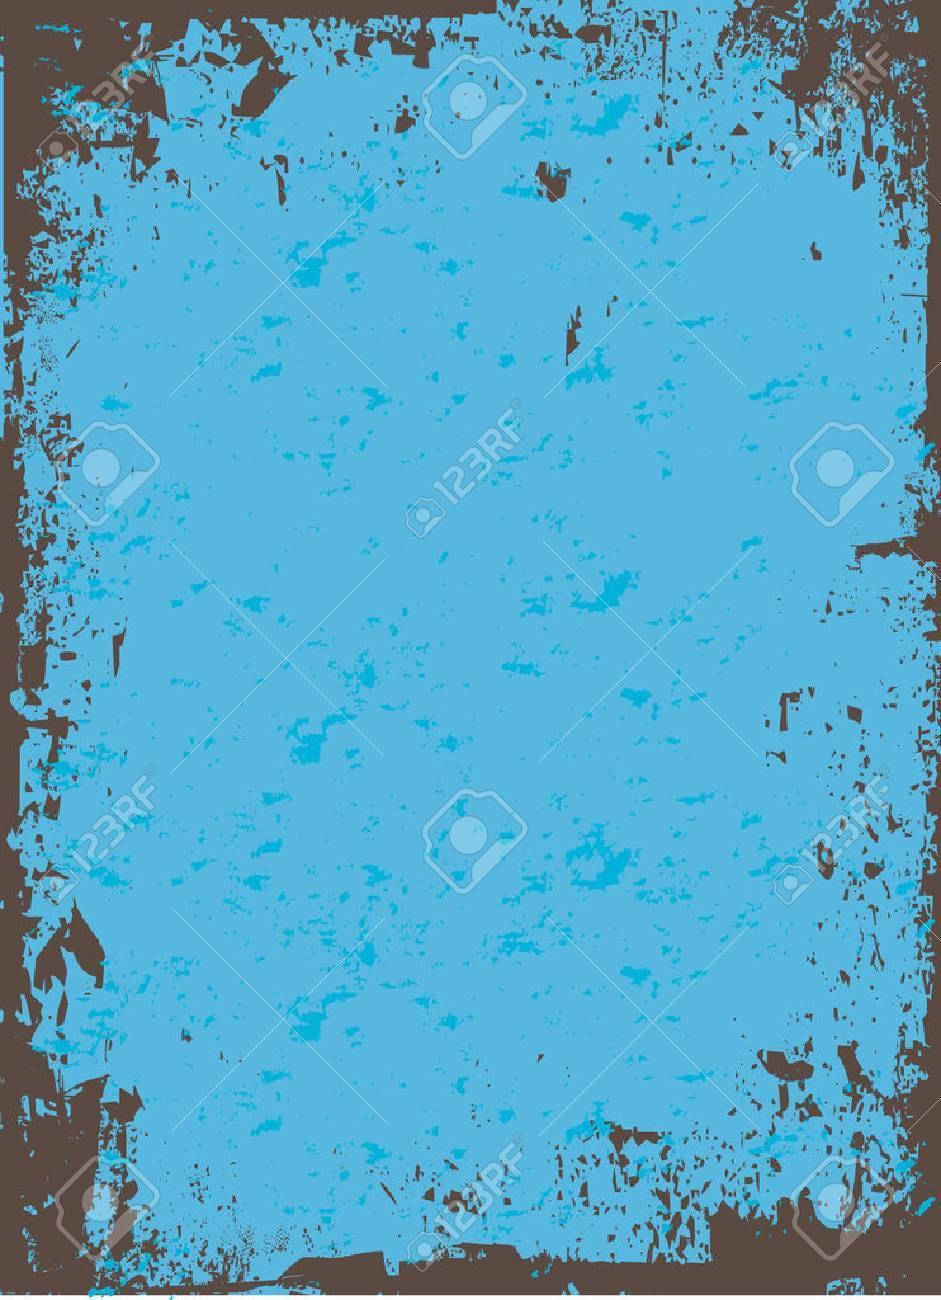 A worn looking grunge background - all elements are easily customizable in this vector image. Stock Vector - 4411201